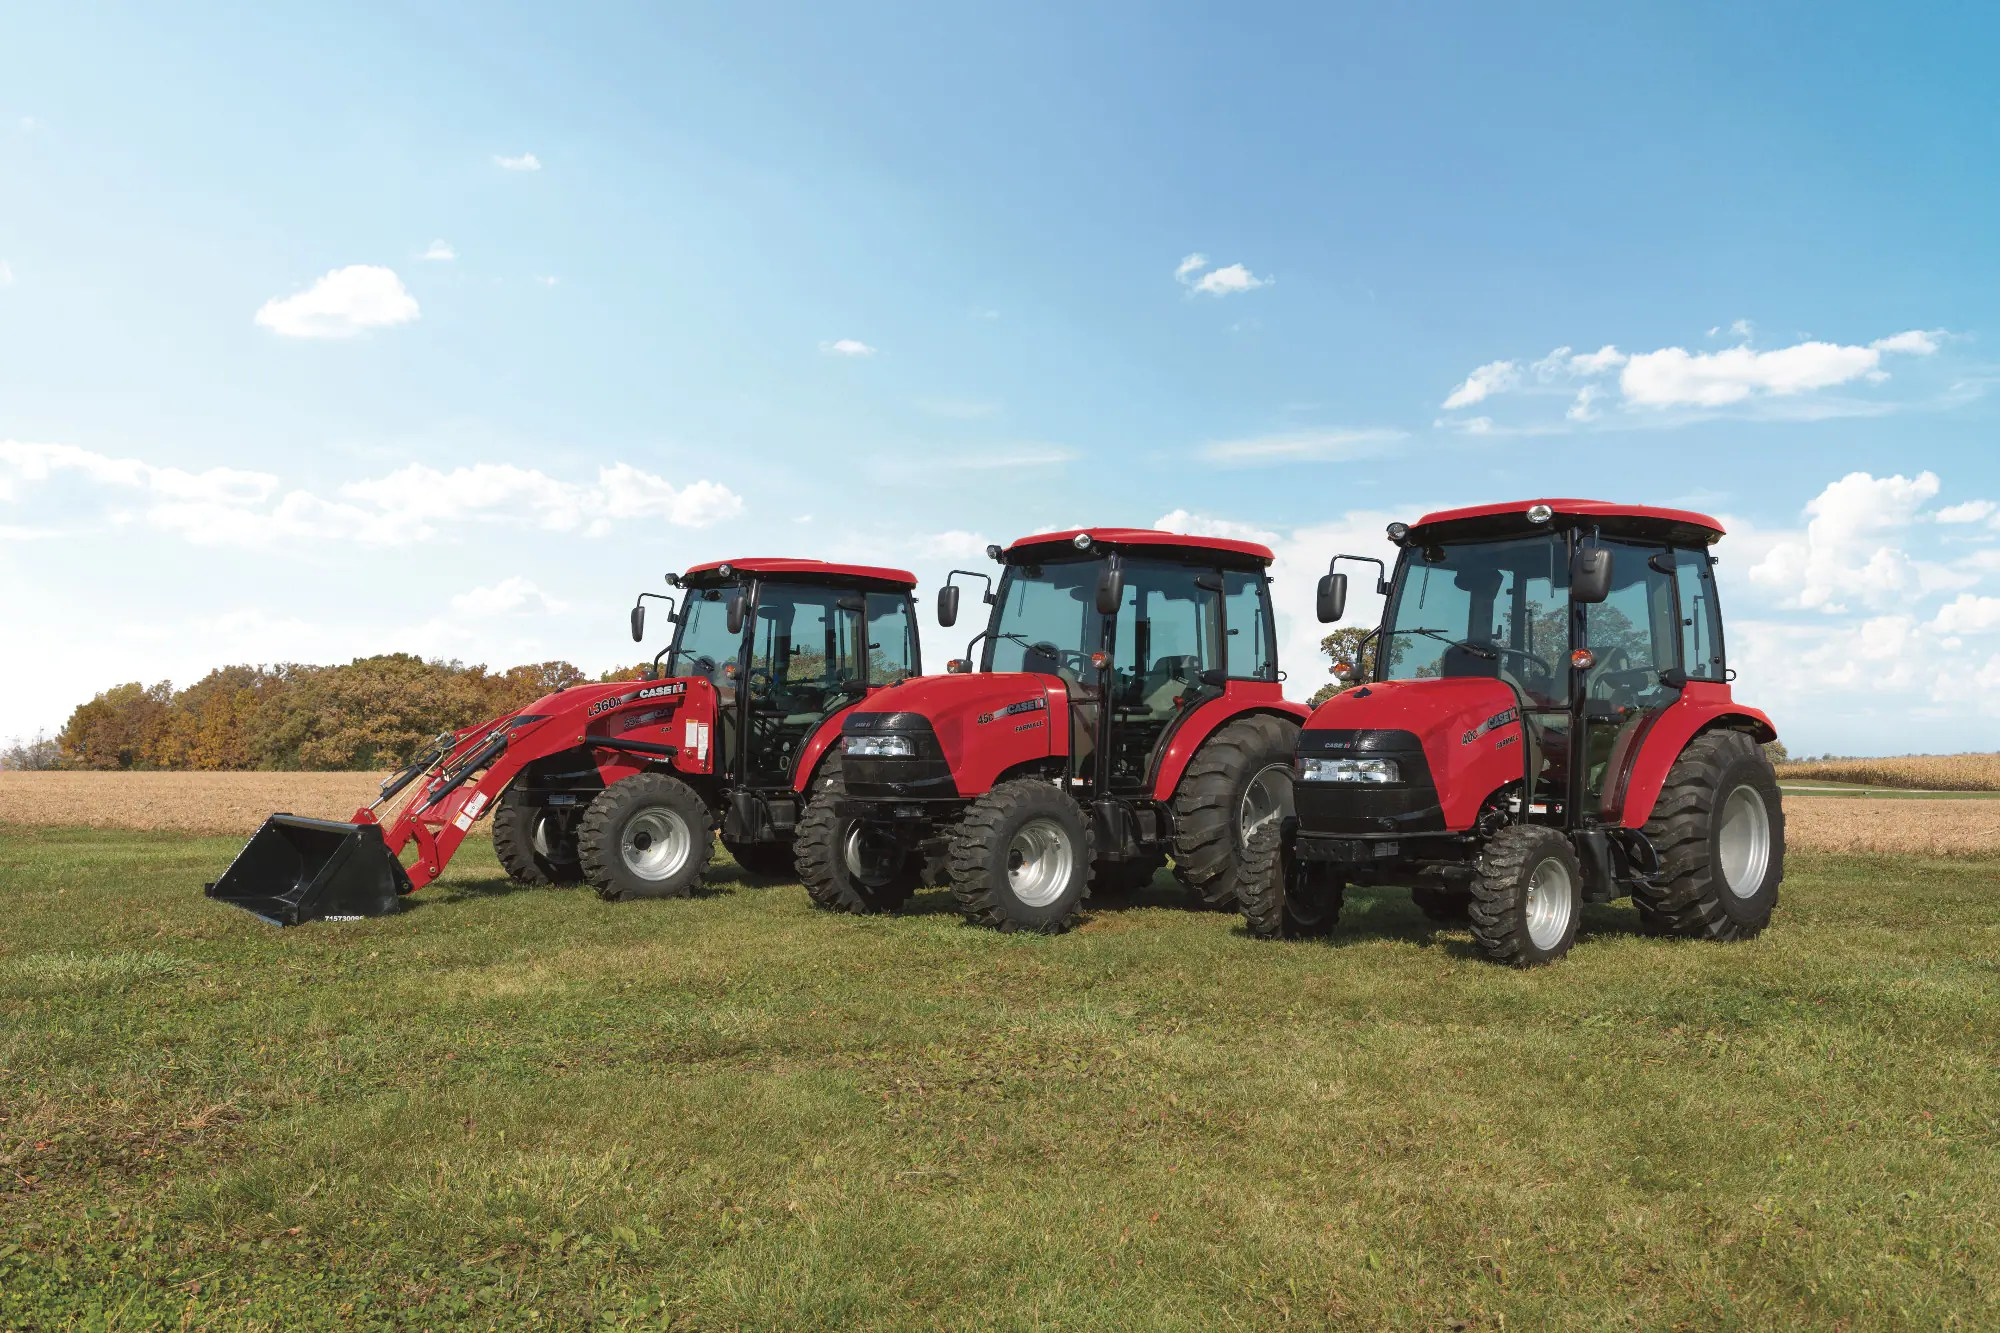 hight resolution of a compact tractor at a compact price without sacrificing features